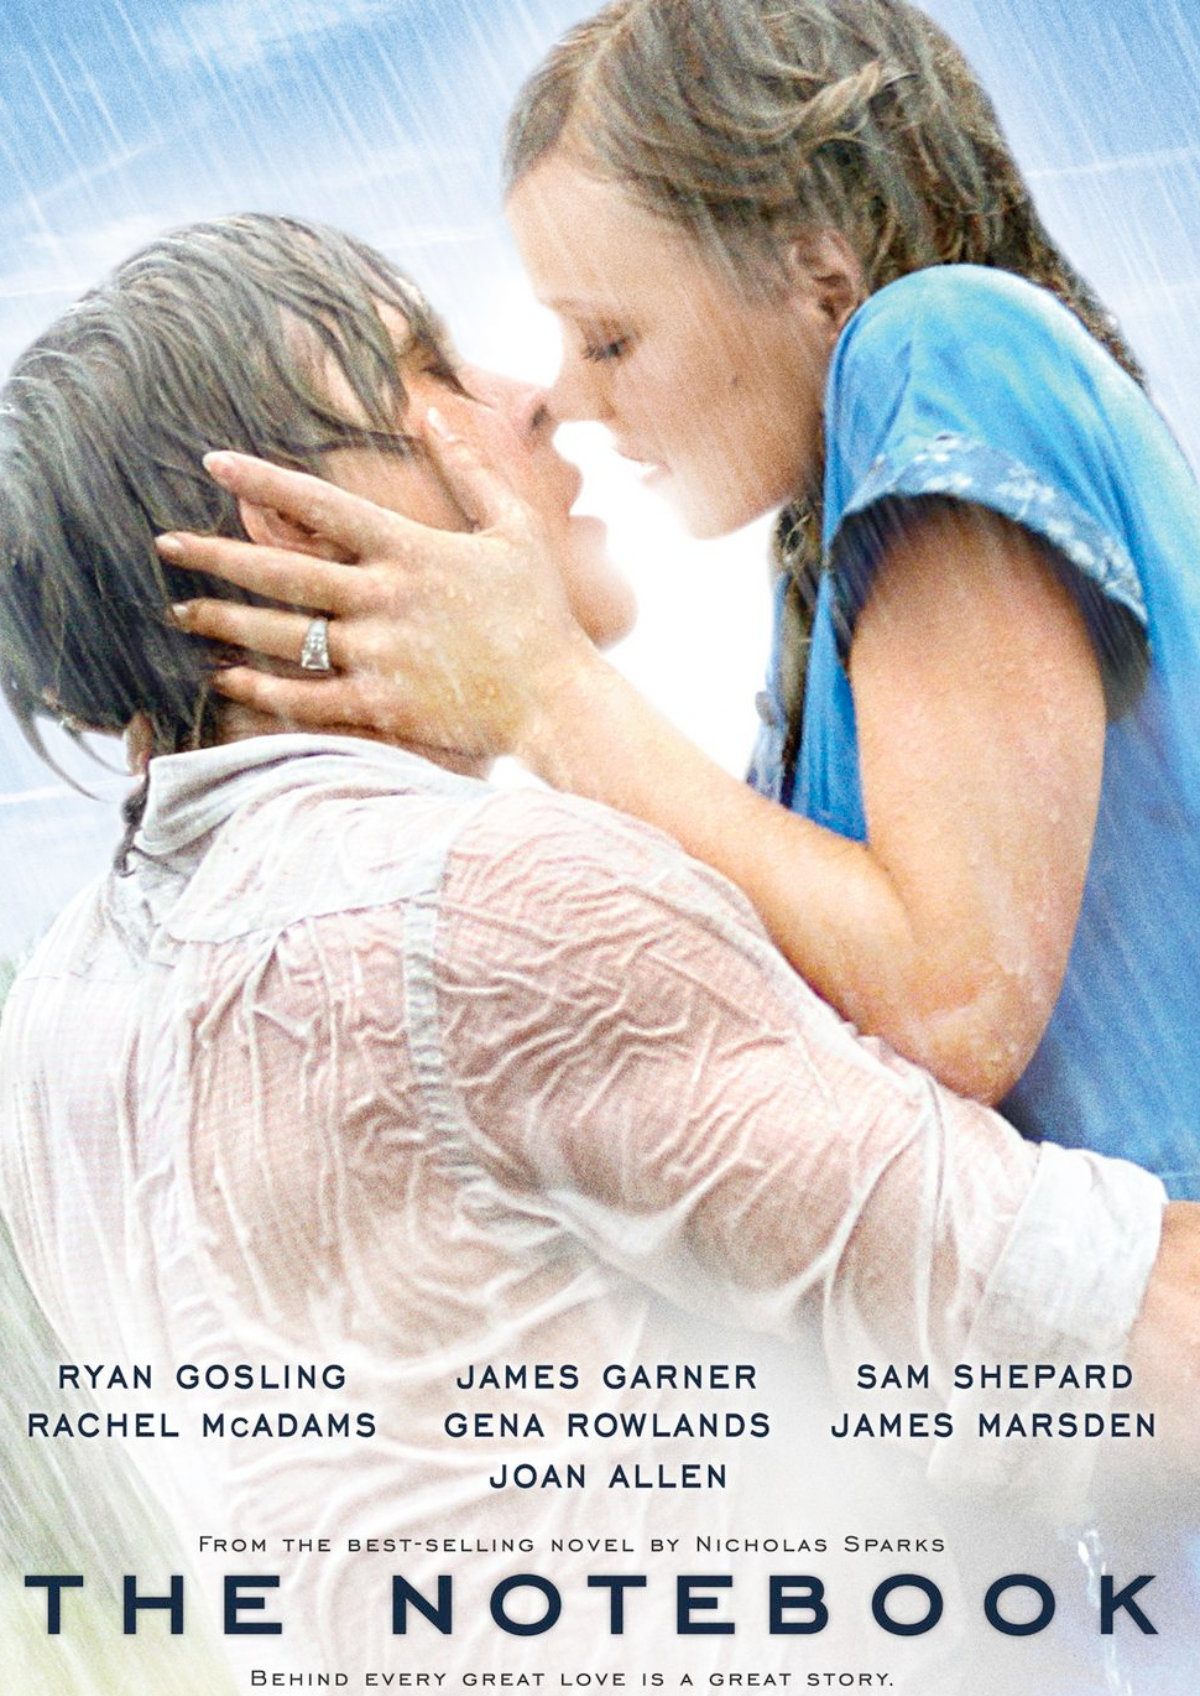 'The Notebook' movie poster